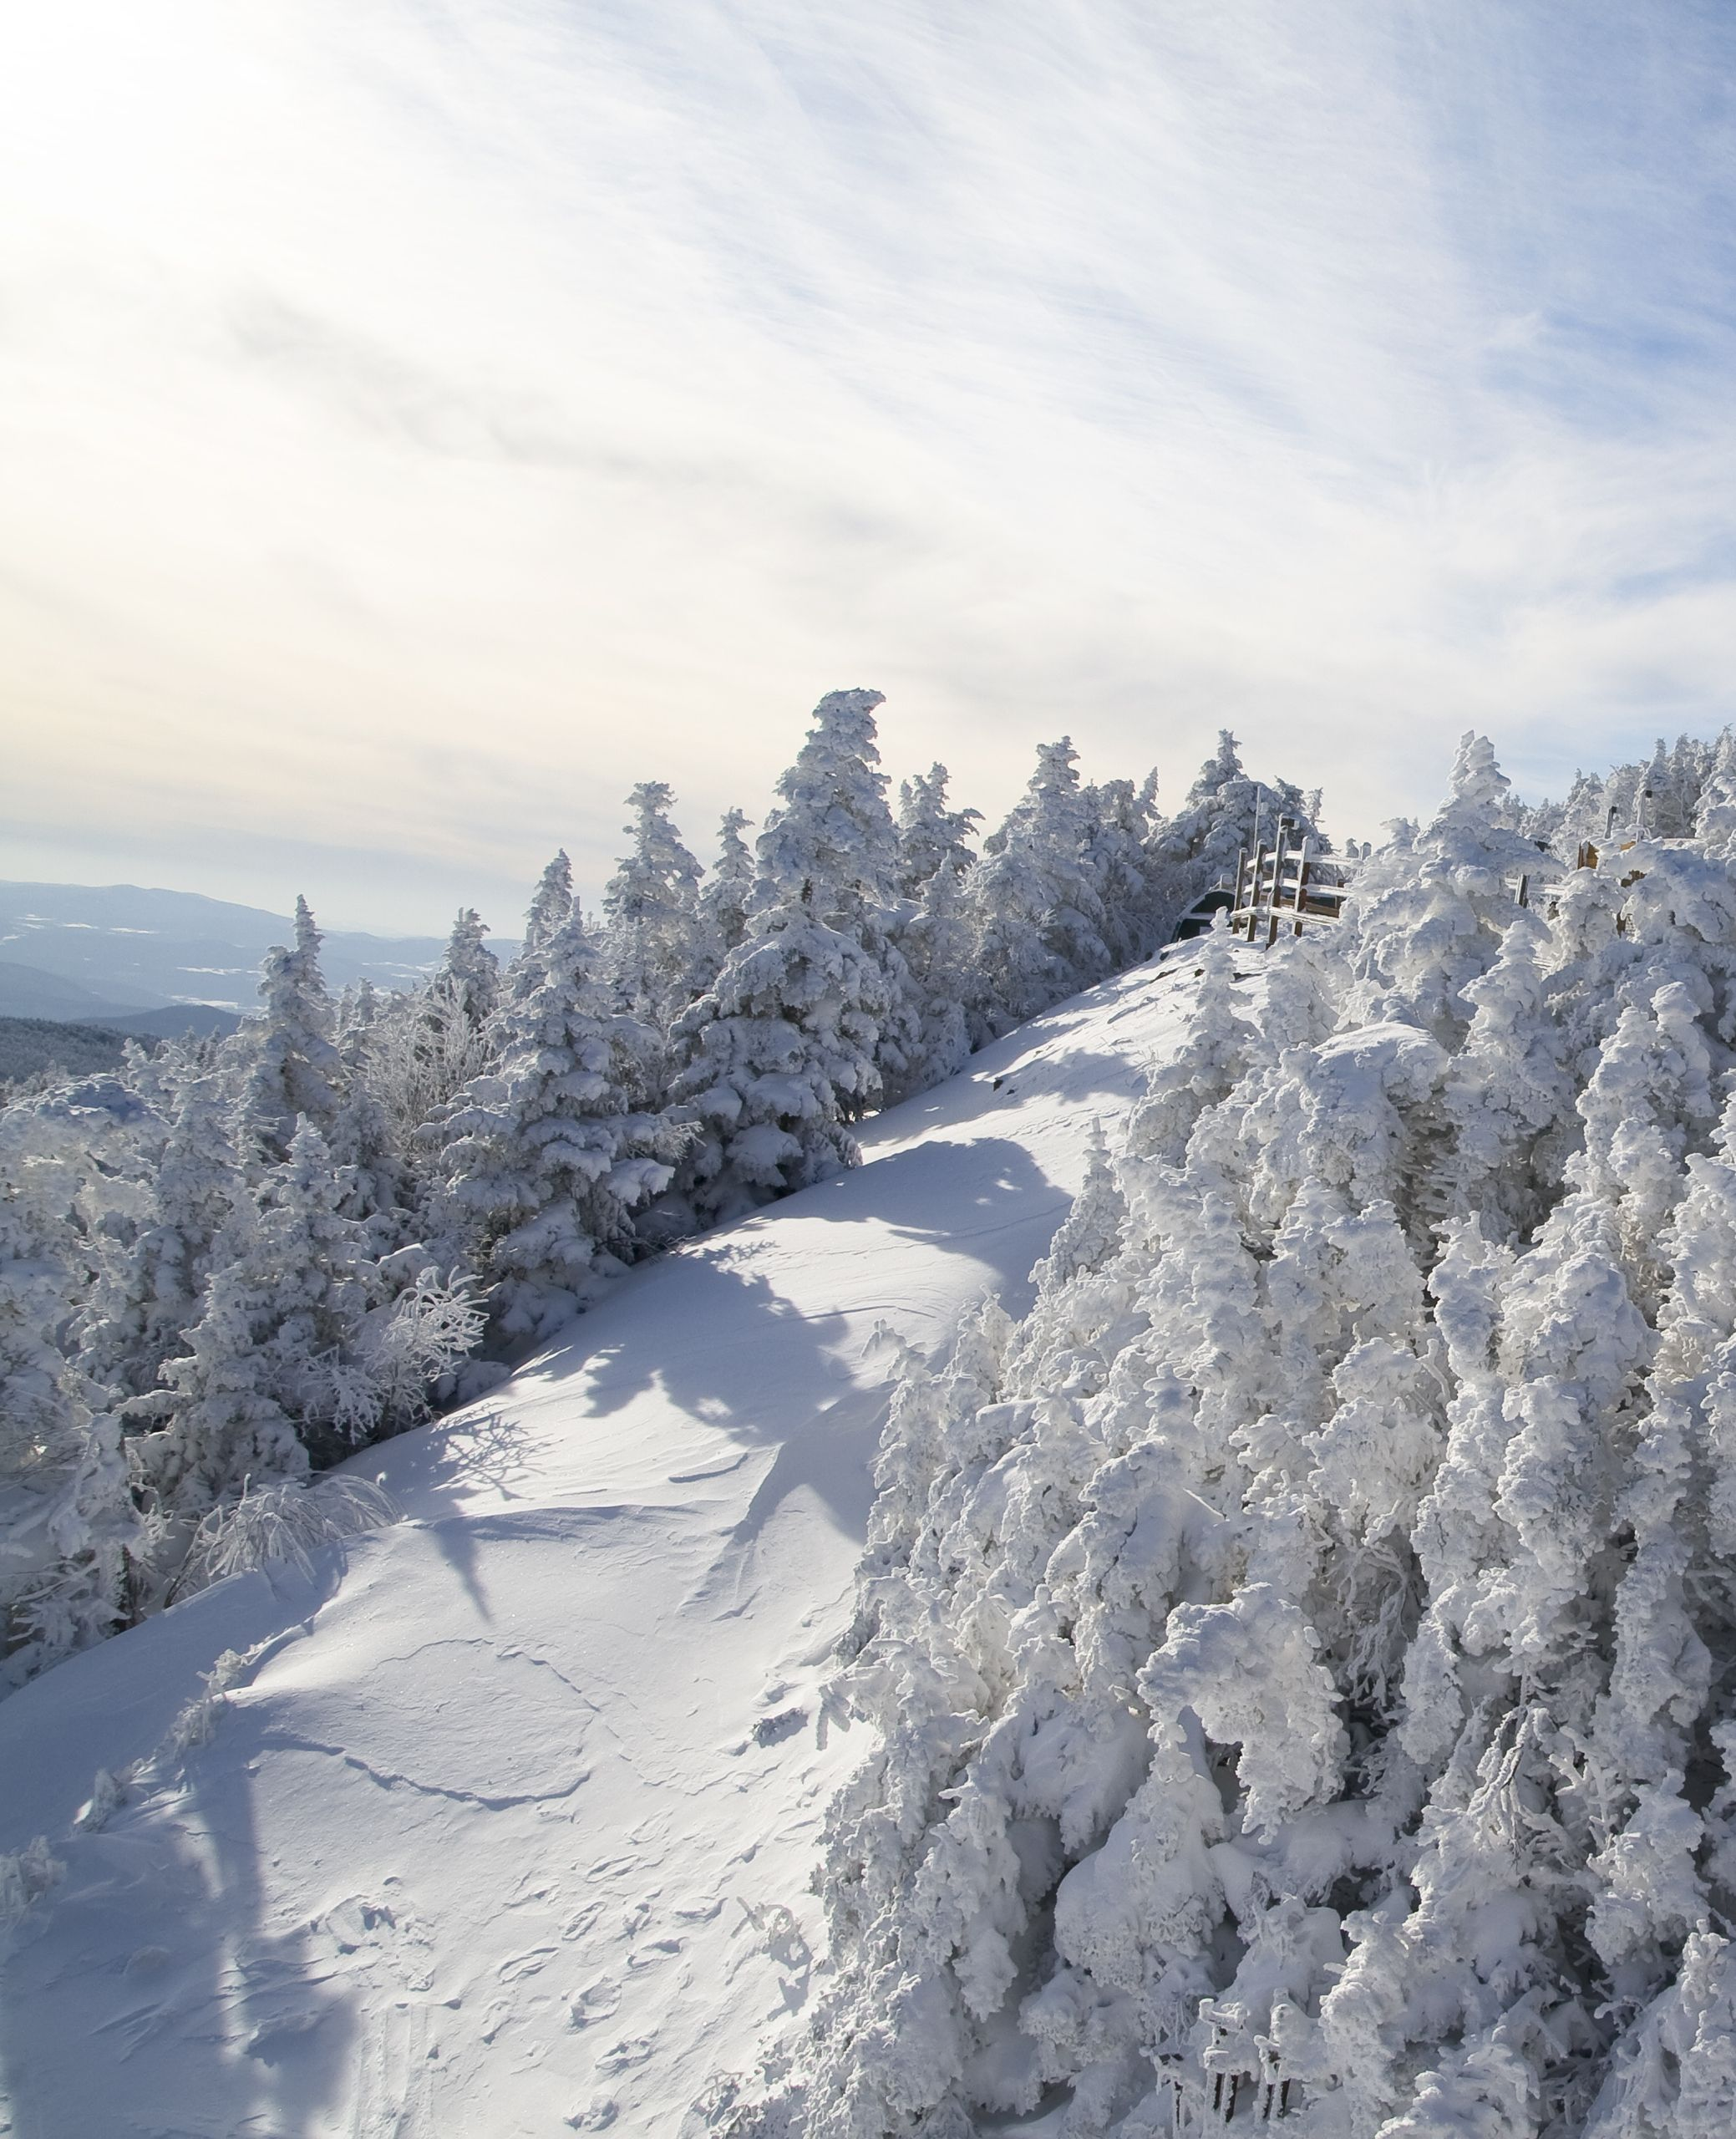 Best Places In The Us To Snowboard: Even Though December Skiing Is Not Guaranteed In Many